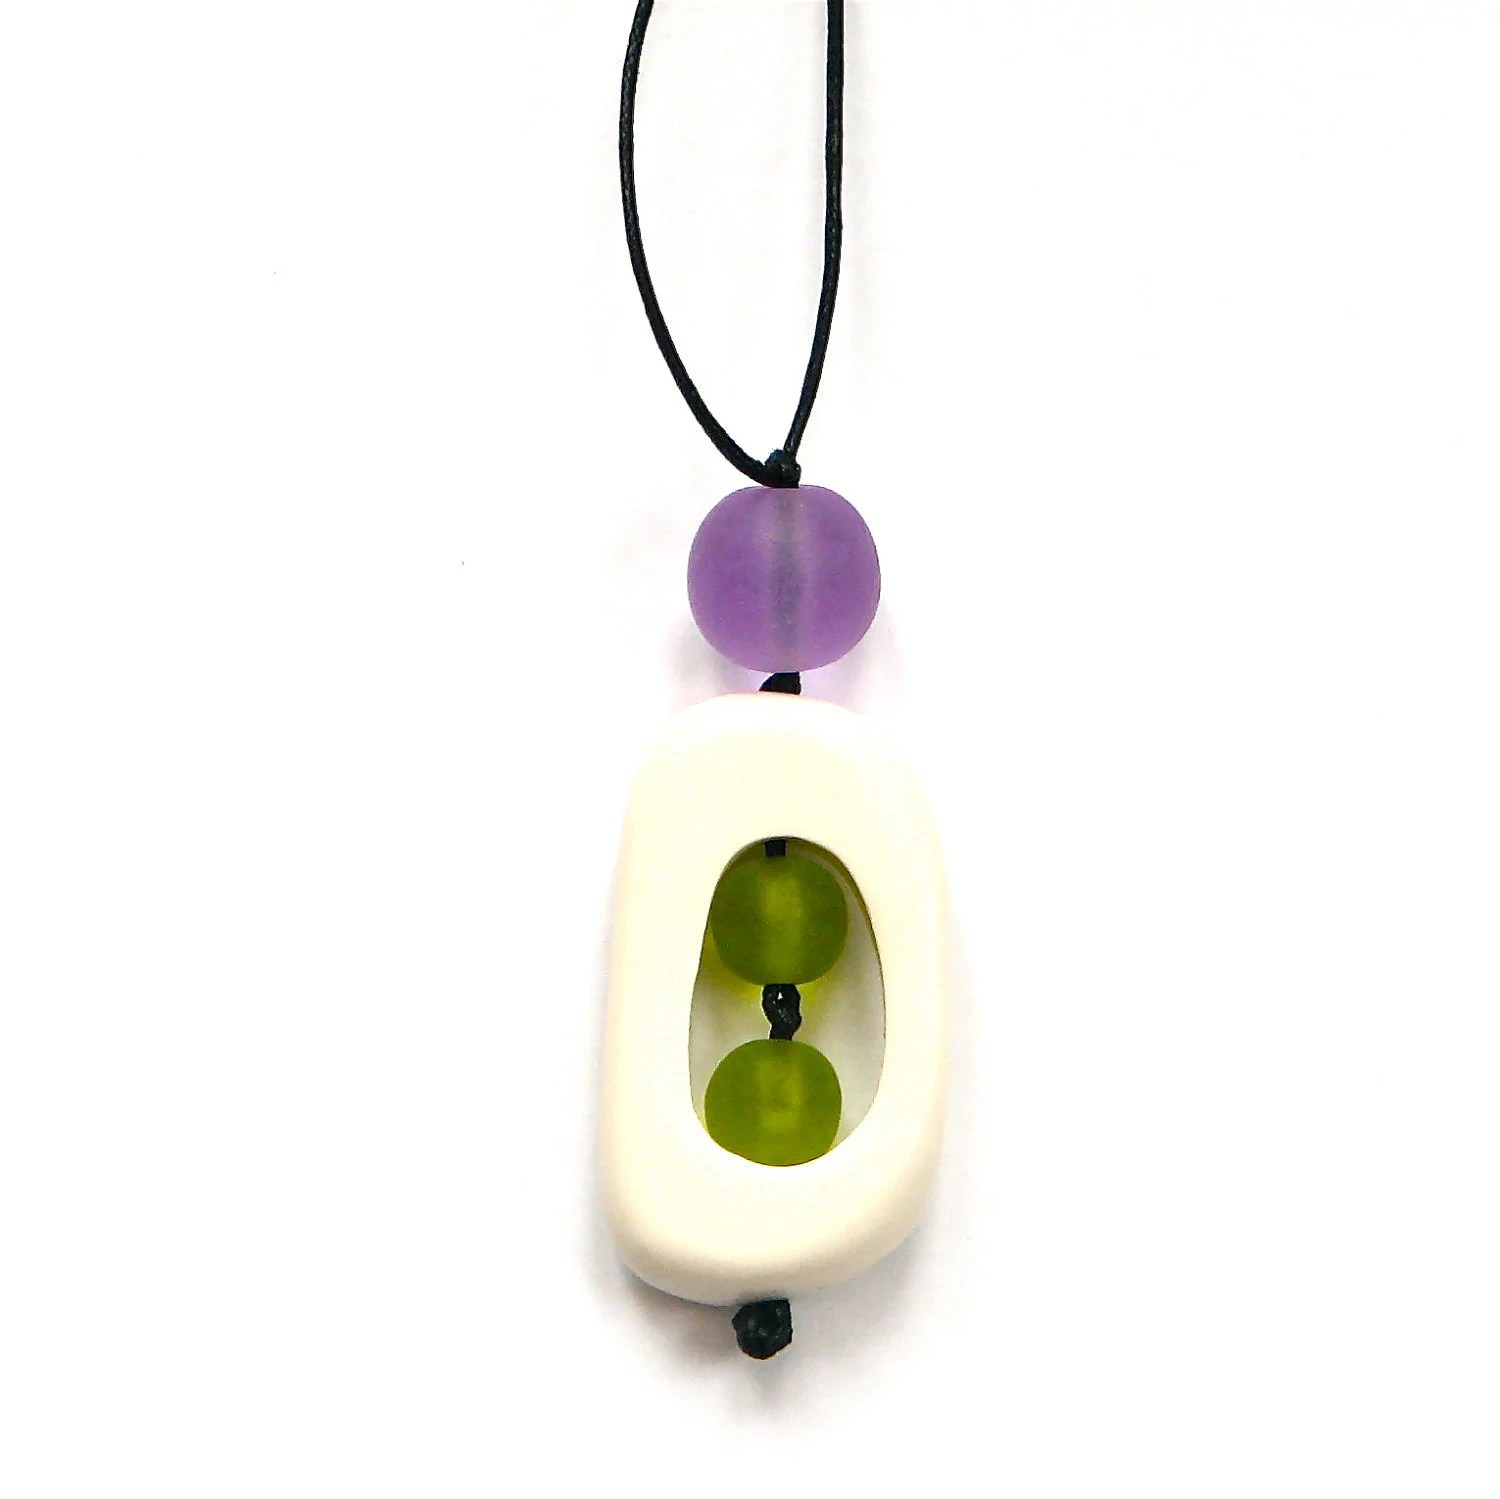 Nursing Mom Necklace - Non Toxic Resin Nursing Breastfeeding Necklace - 'Twiddle Buster' - Chartreuse Green and Lavender Purple